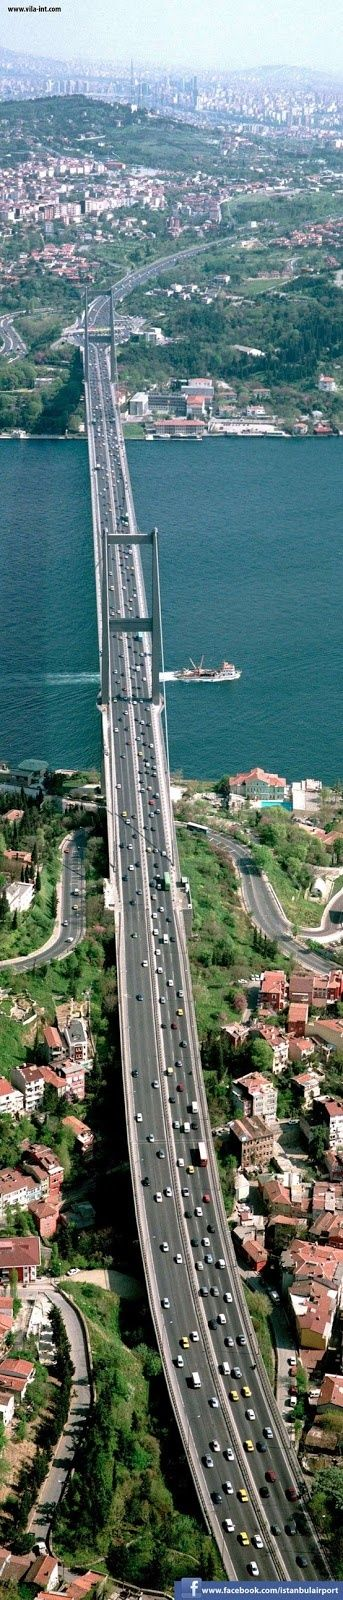 Amazing Snaps: Bosphorus Bridge, the Bridge that belongs to Two Continents | See more